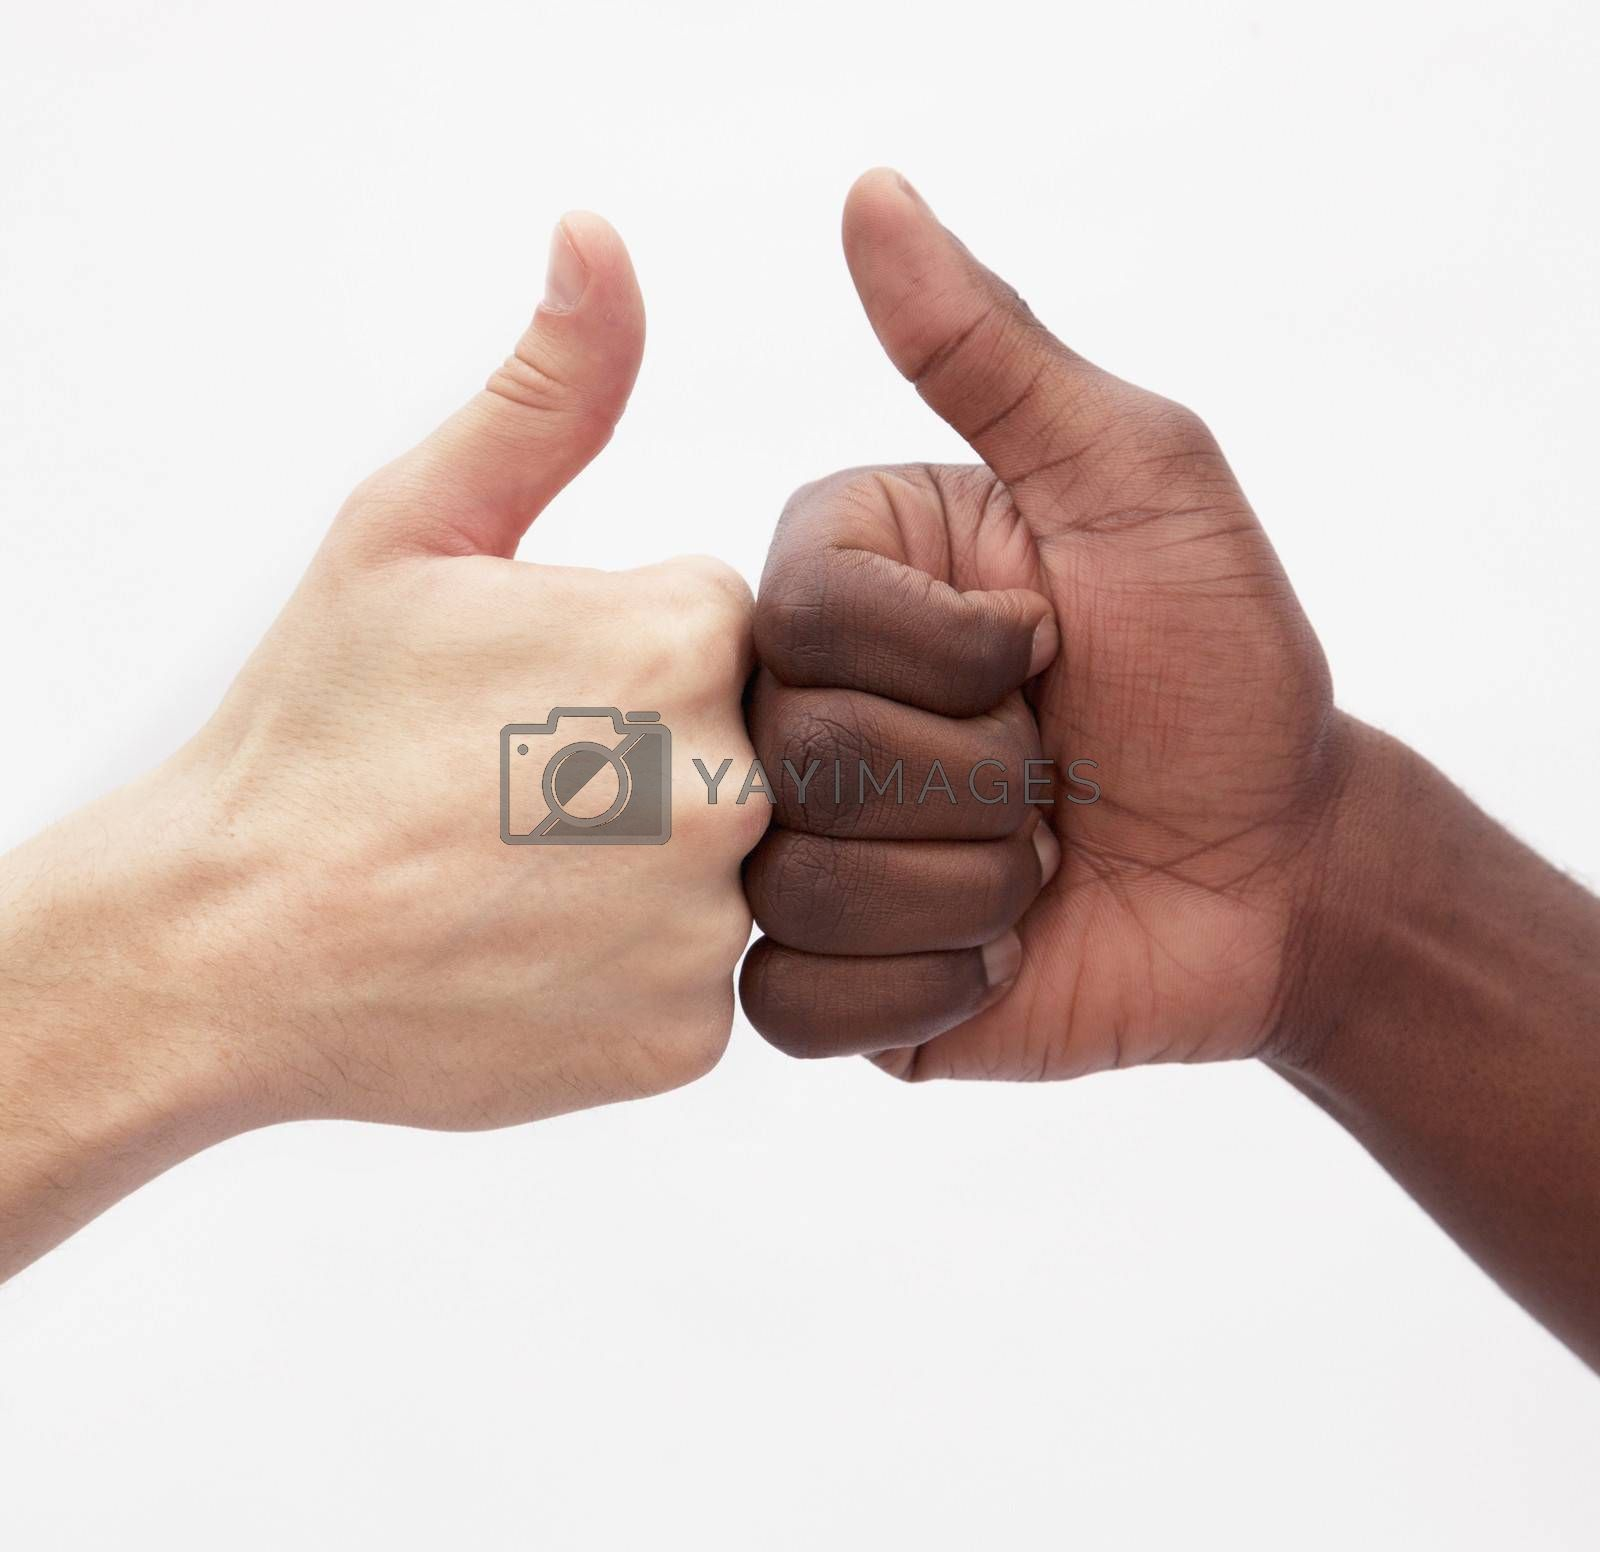 Two young men giving each other the thumbs up sign, close-up, studio shot by XiXinXing